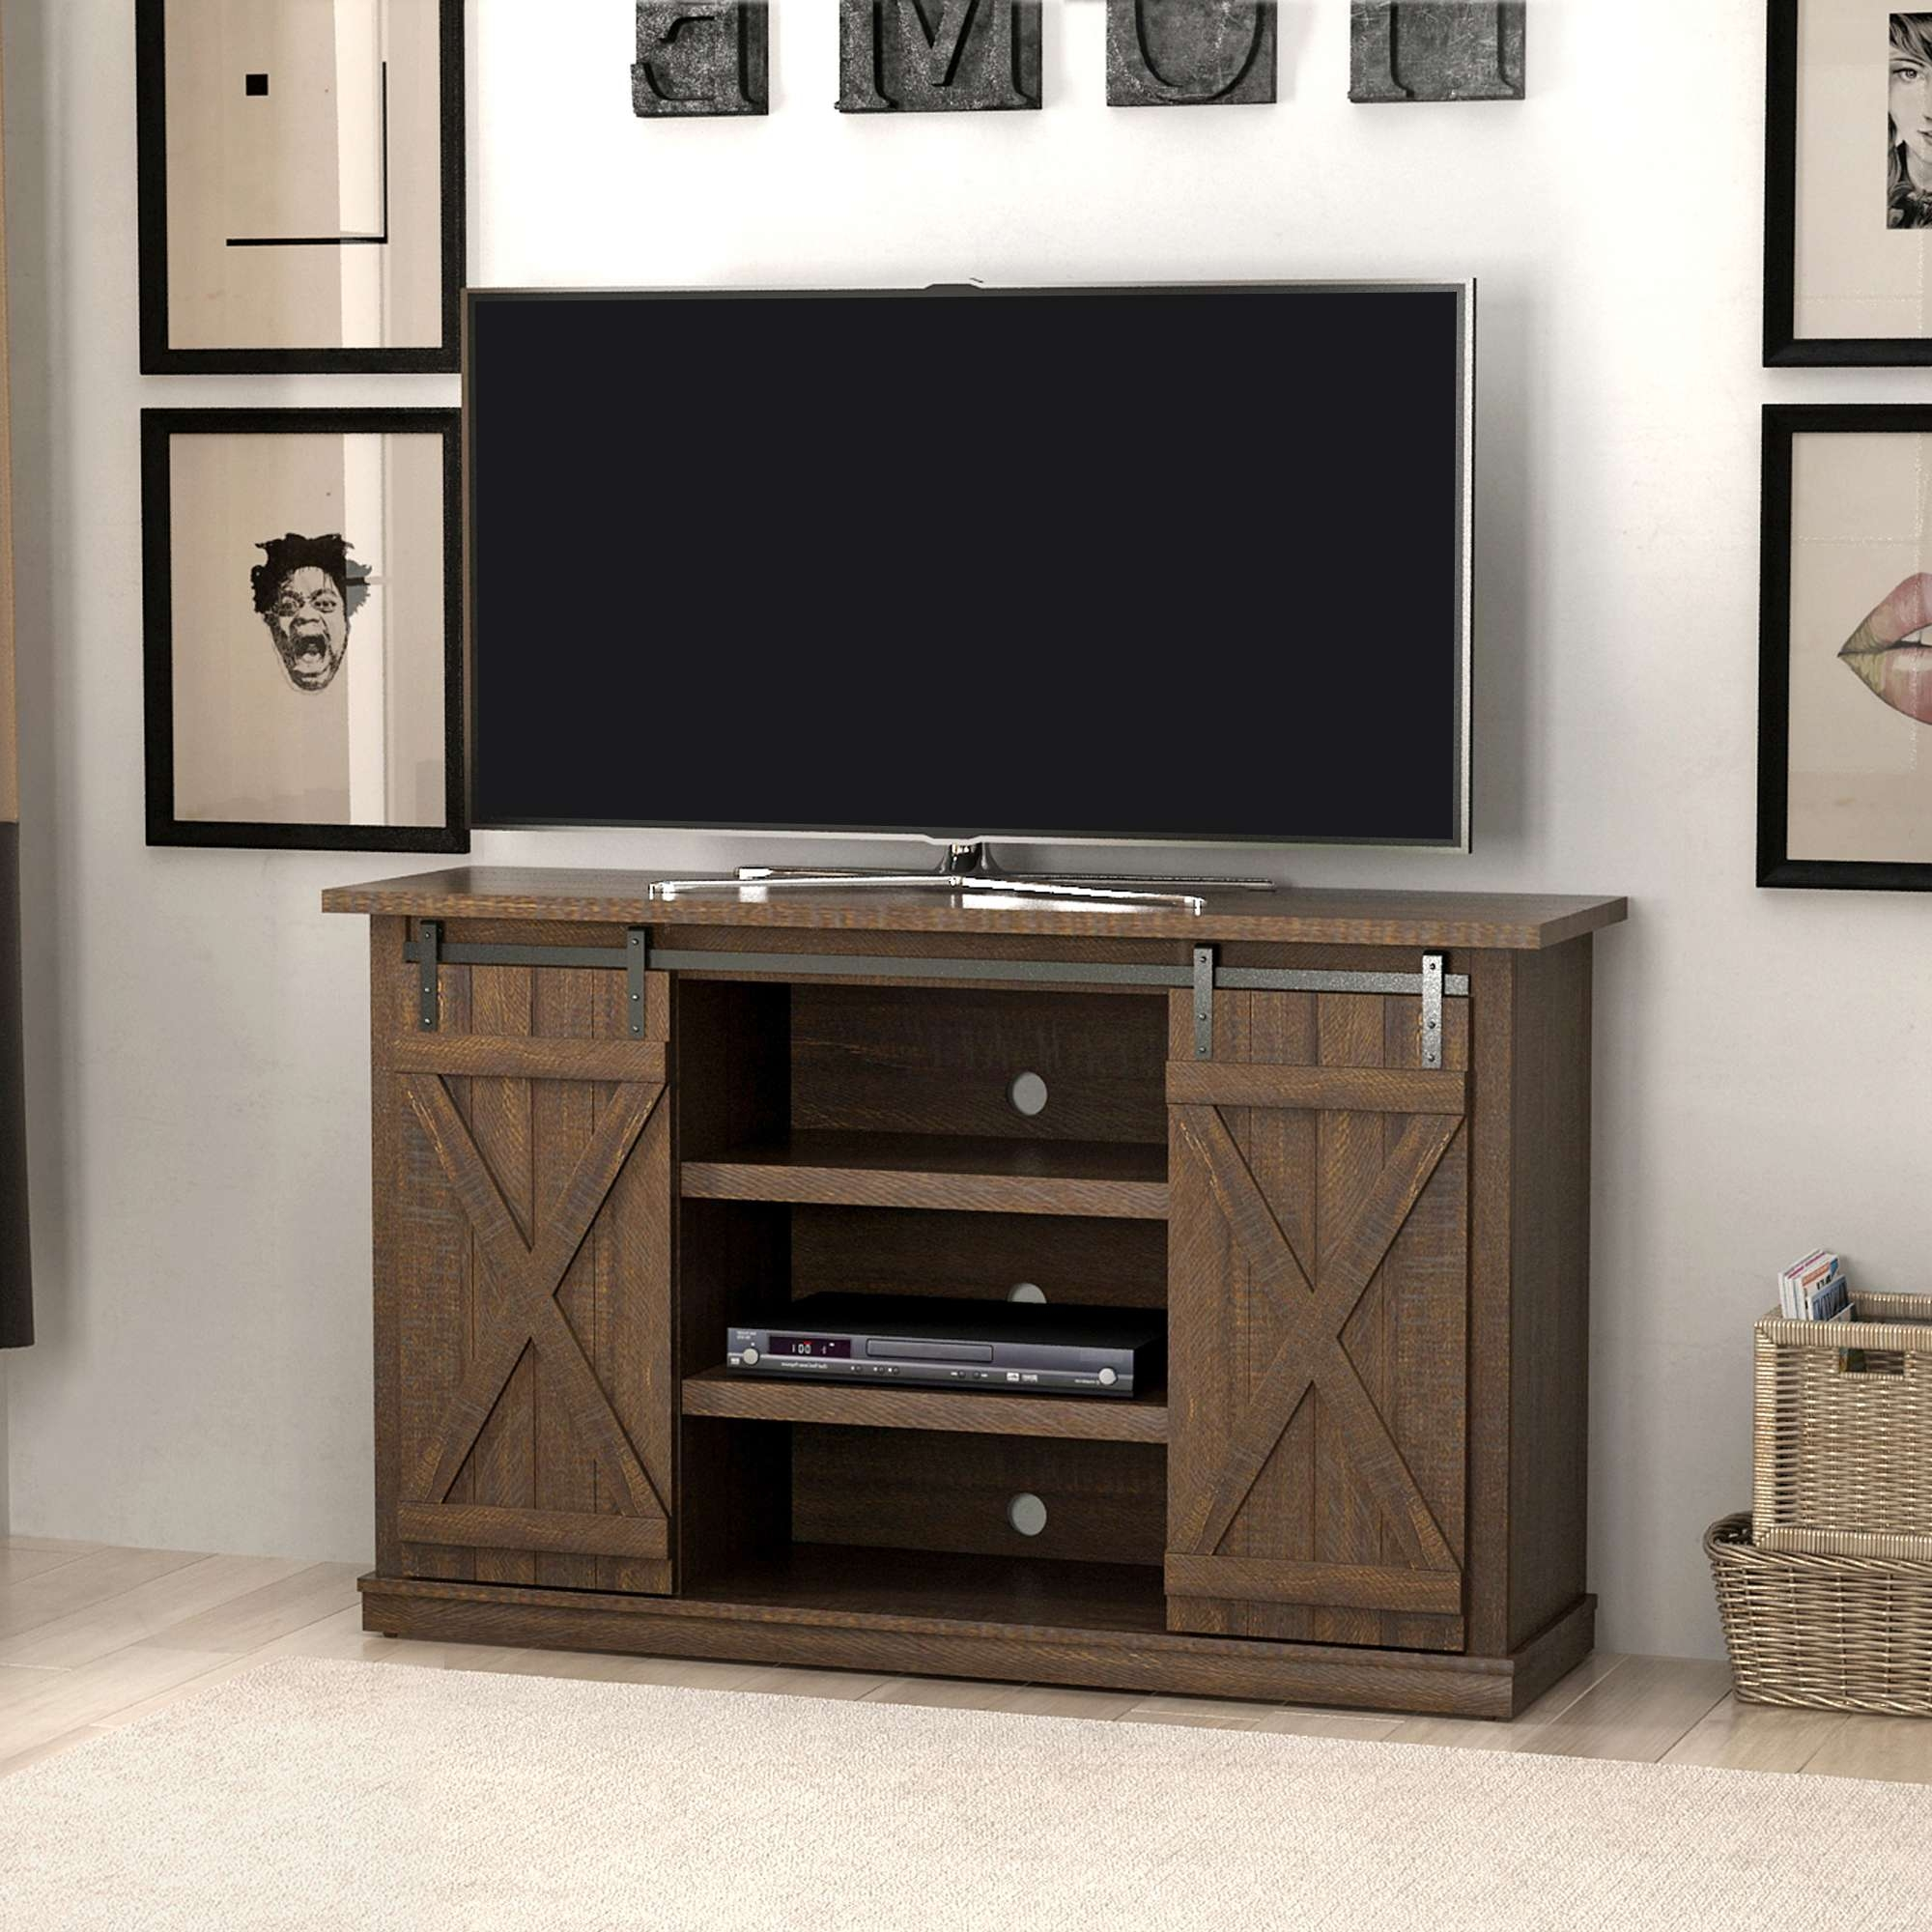 Tv Stands – Walmart In Tv Stands For Tube Tvs (View 9 of 15)